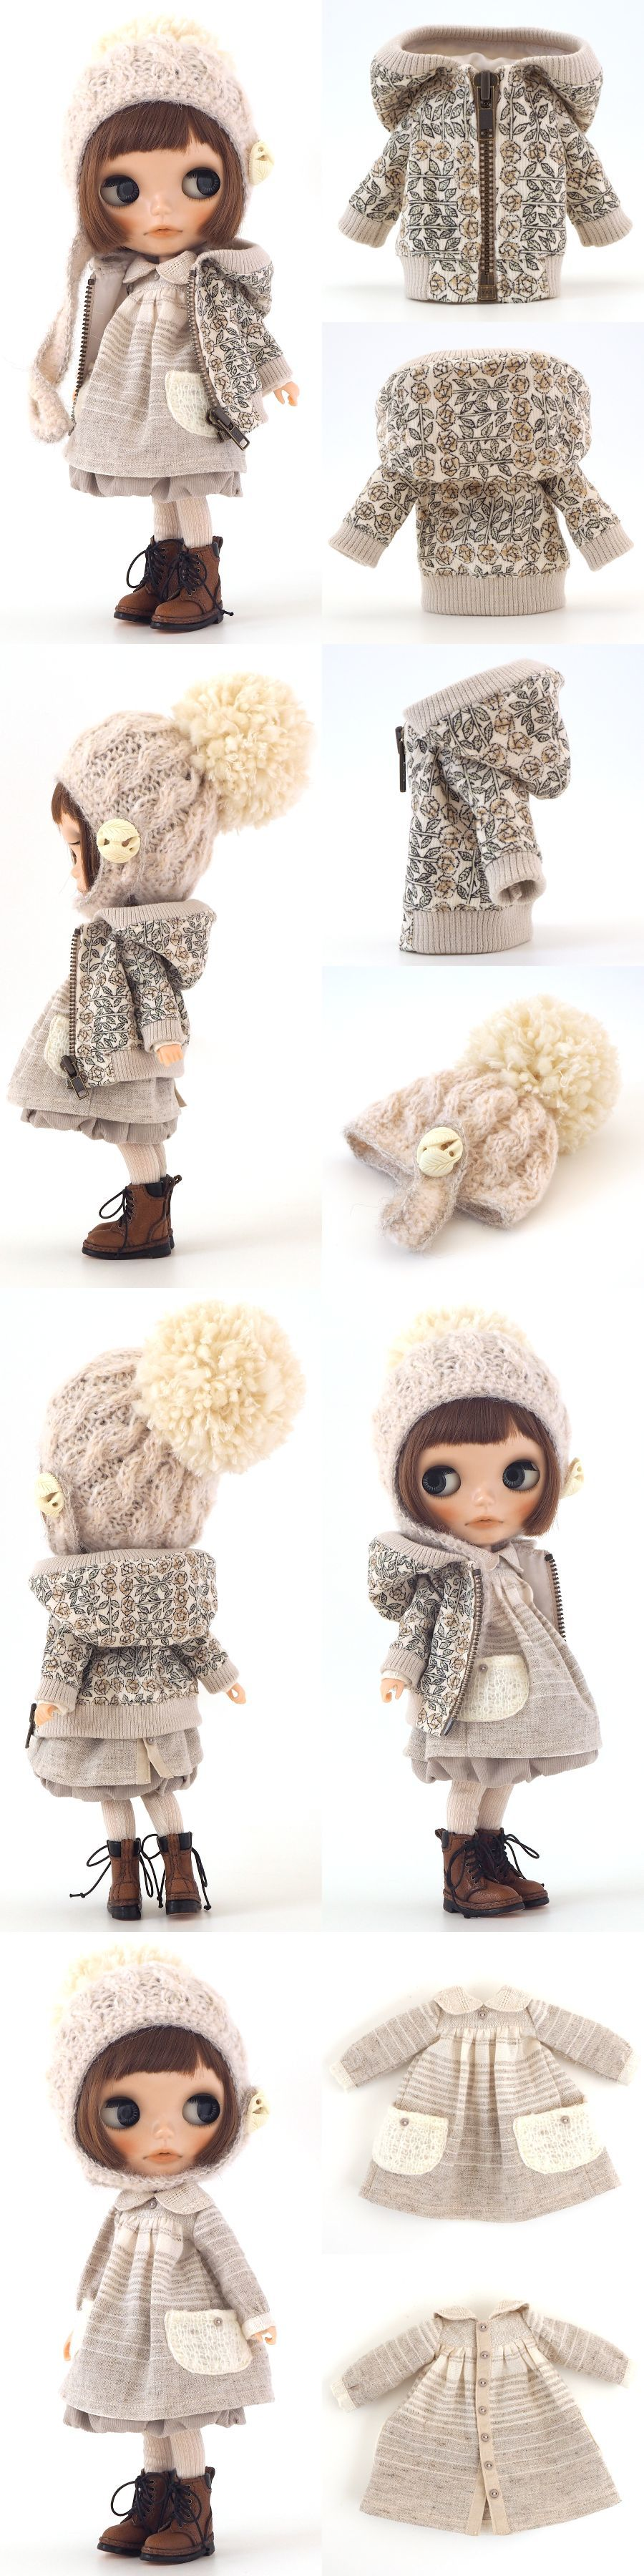 ** Blythe outfit ** Lucalily 560**_d0217189_10284788.jpg